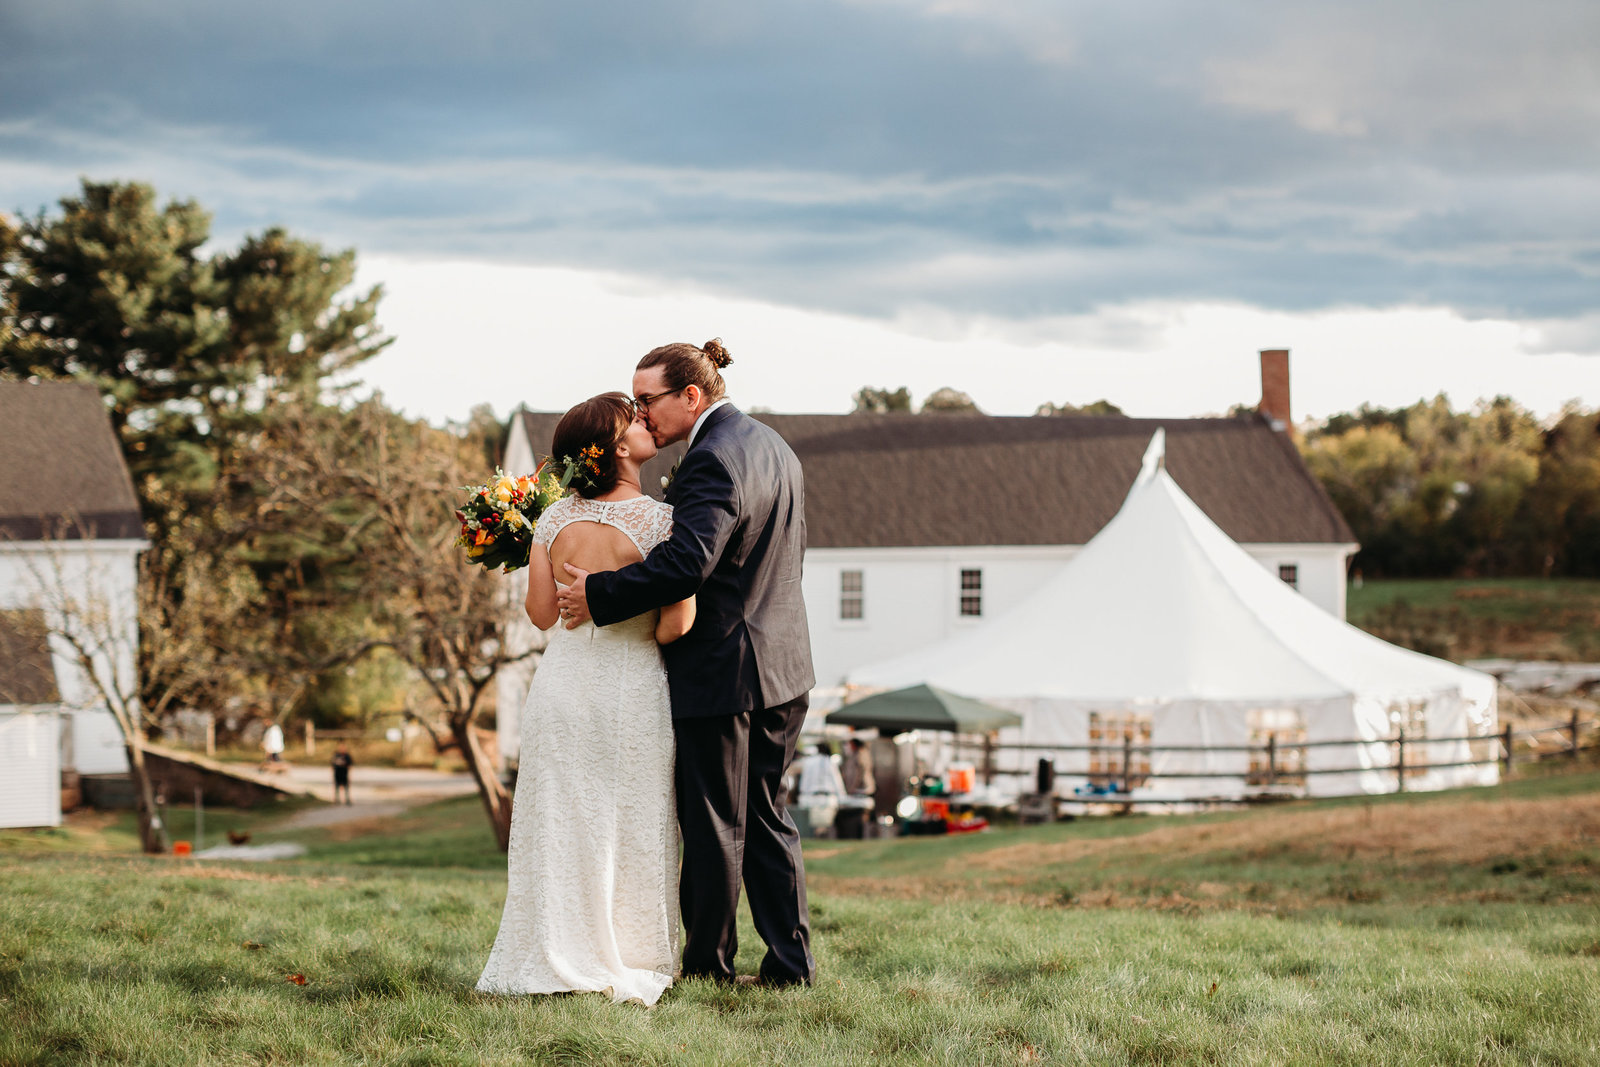 bride and groom share kiss on a farm wedding in massachusetts